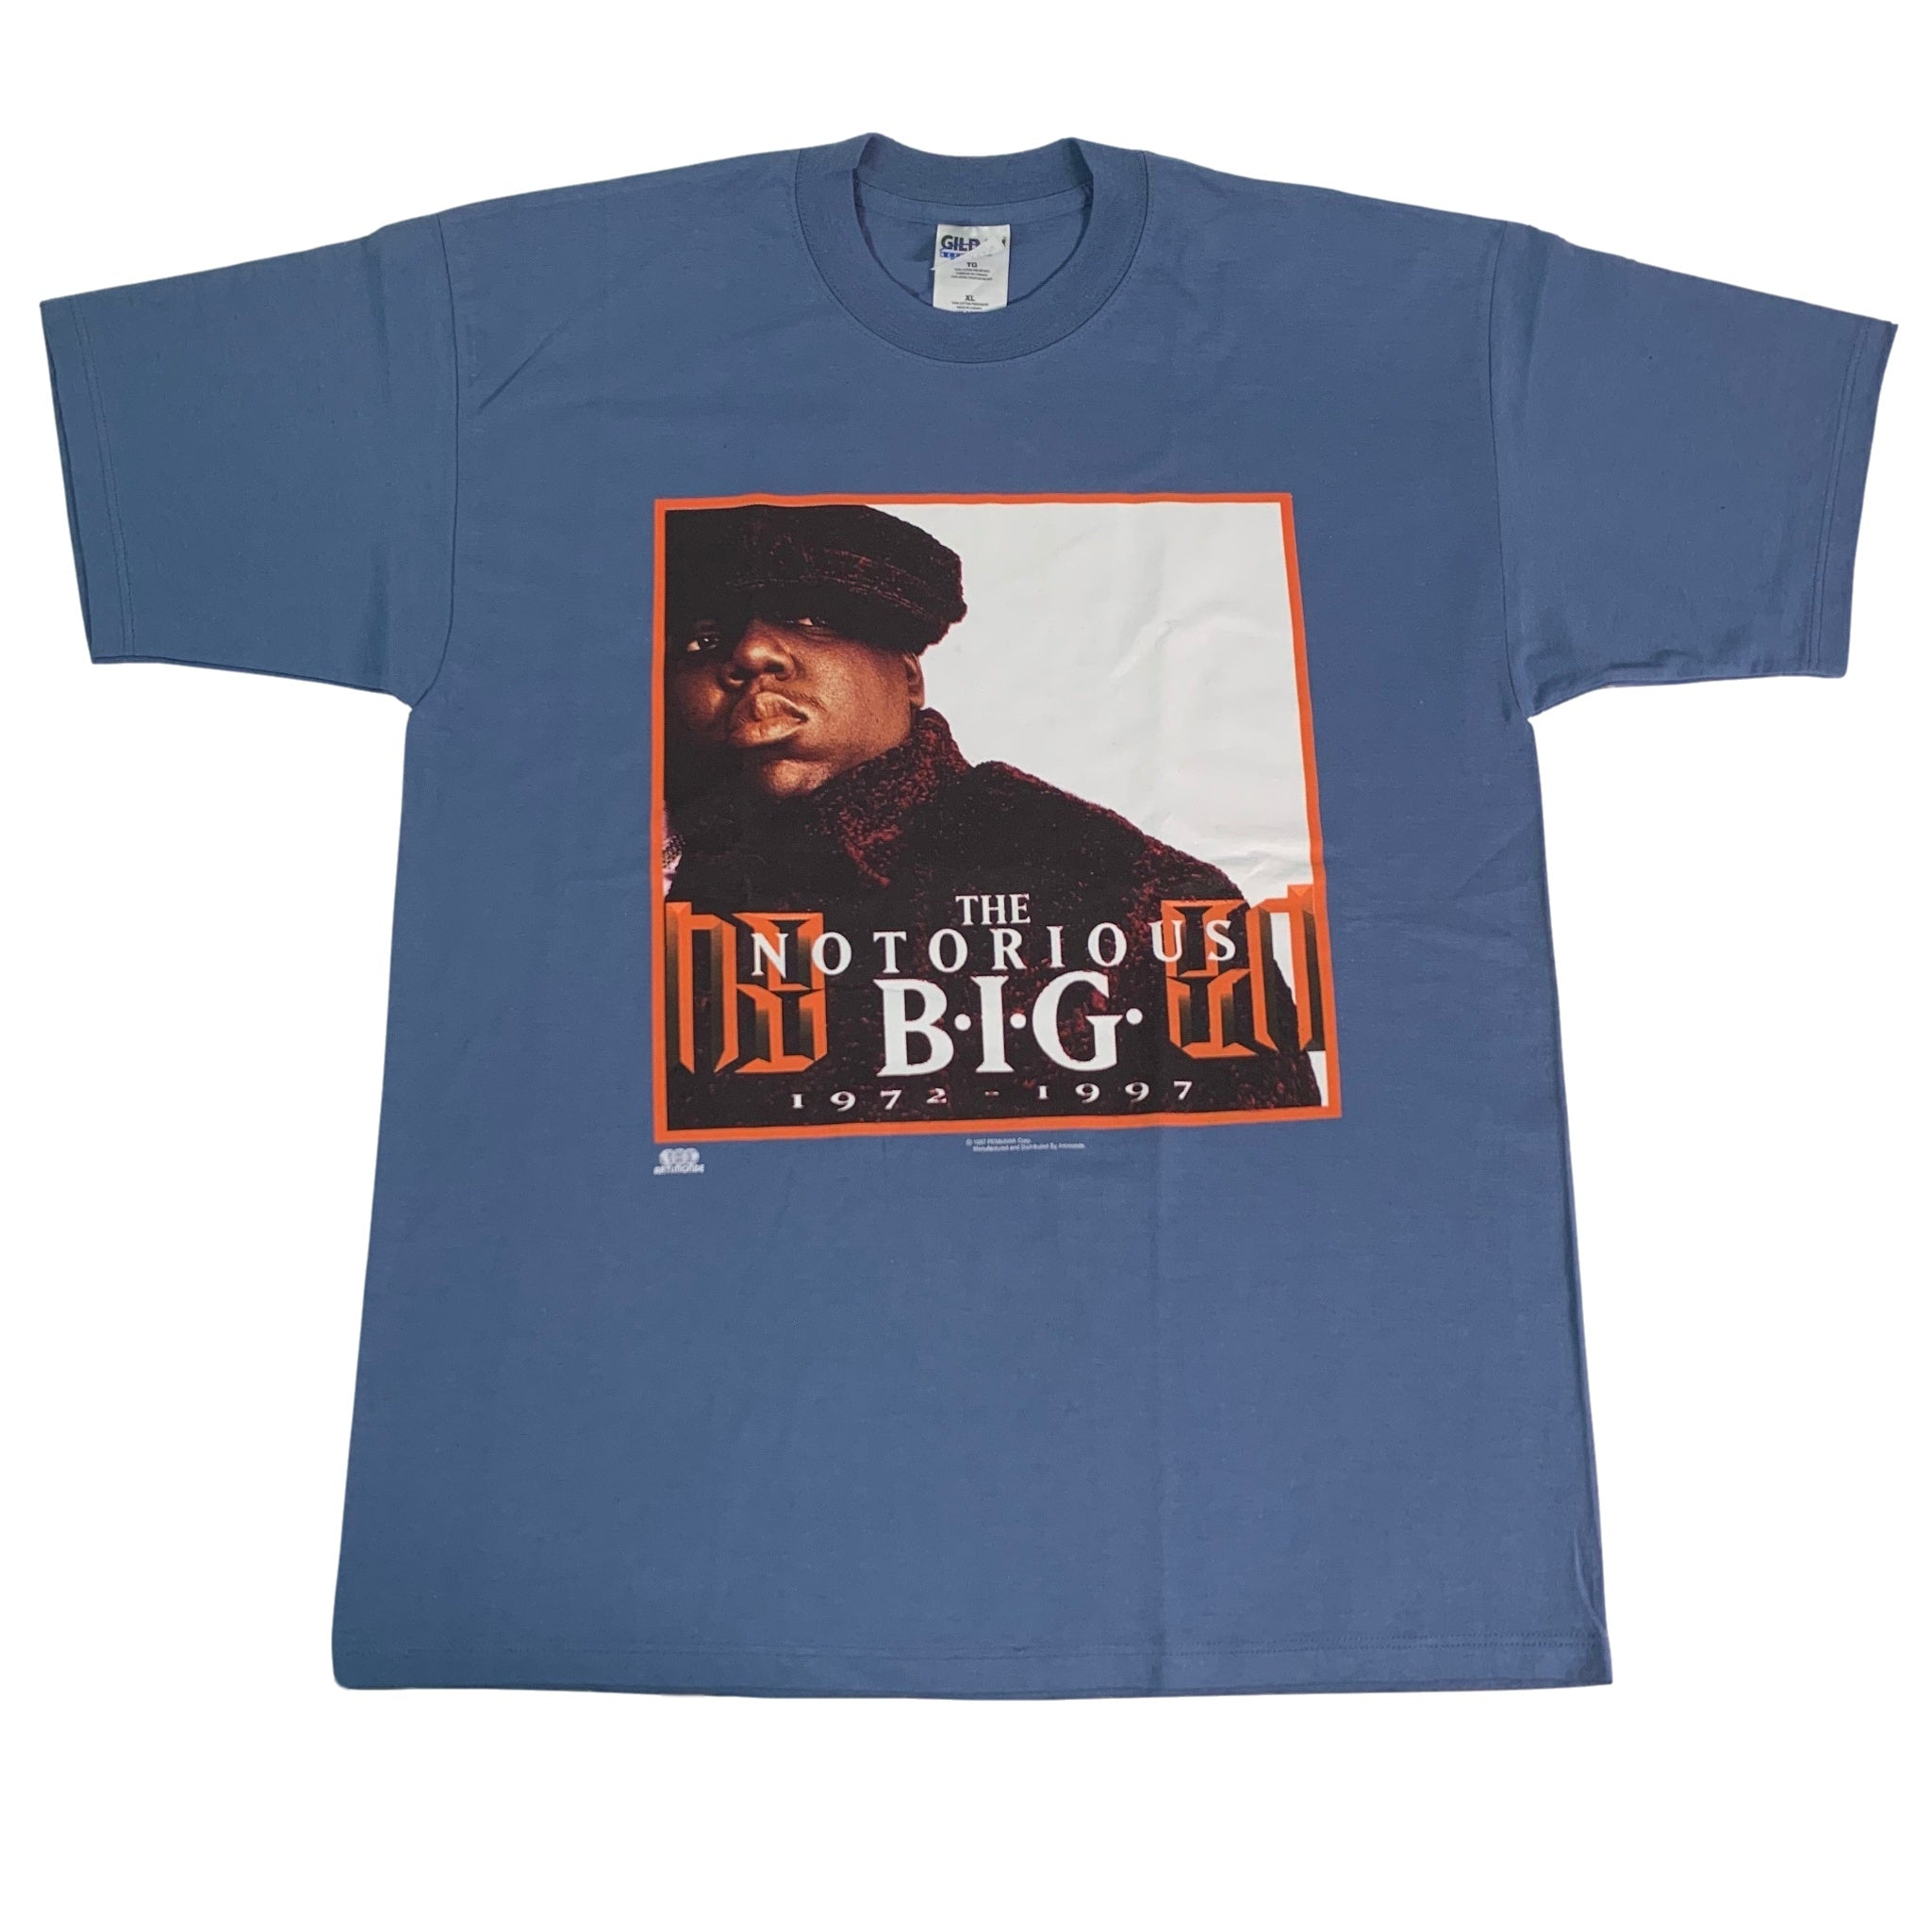 "Vintage The Notorious B.I.G. ""1972-1997"" T-Shirt"